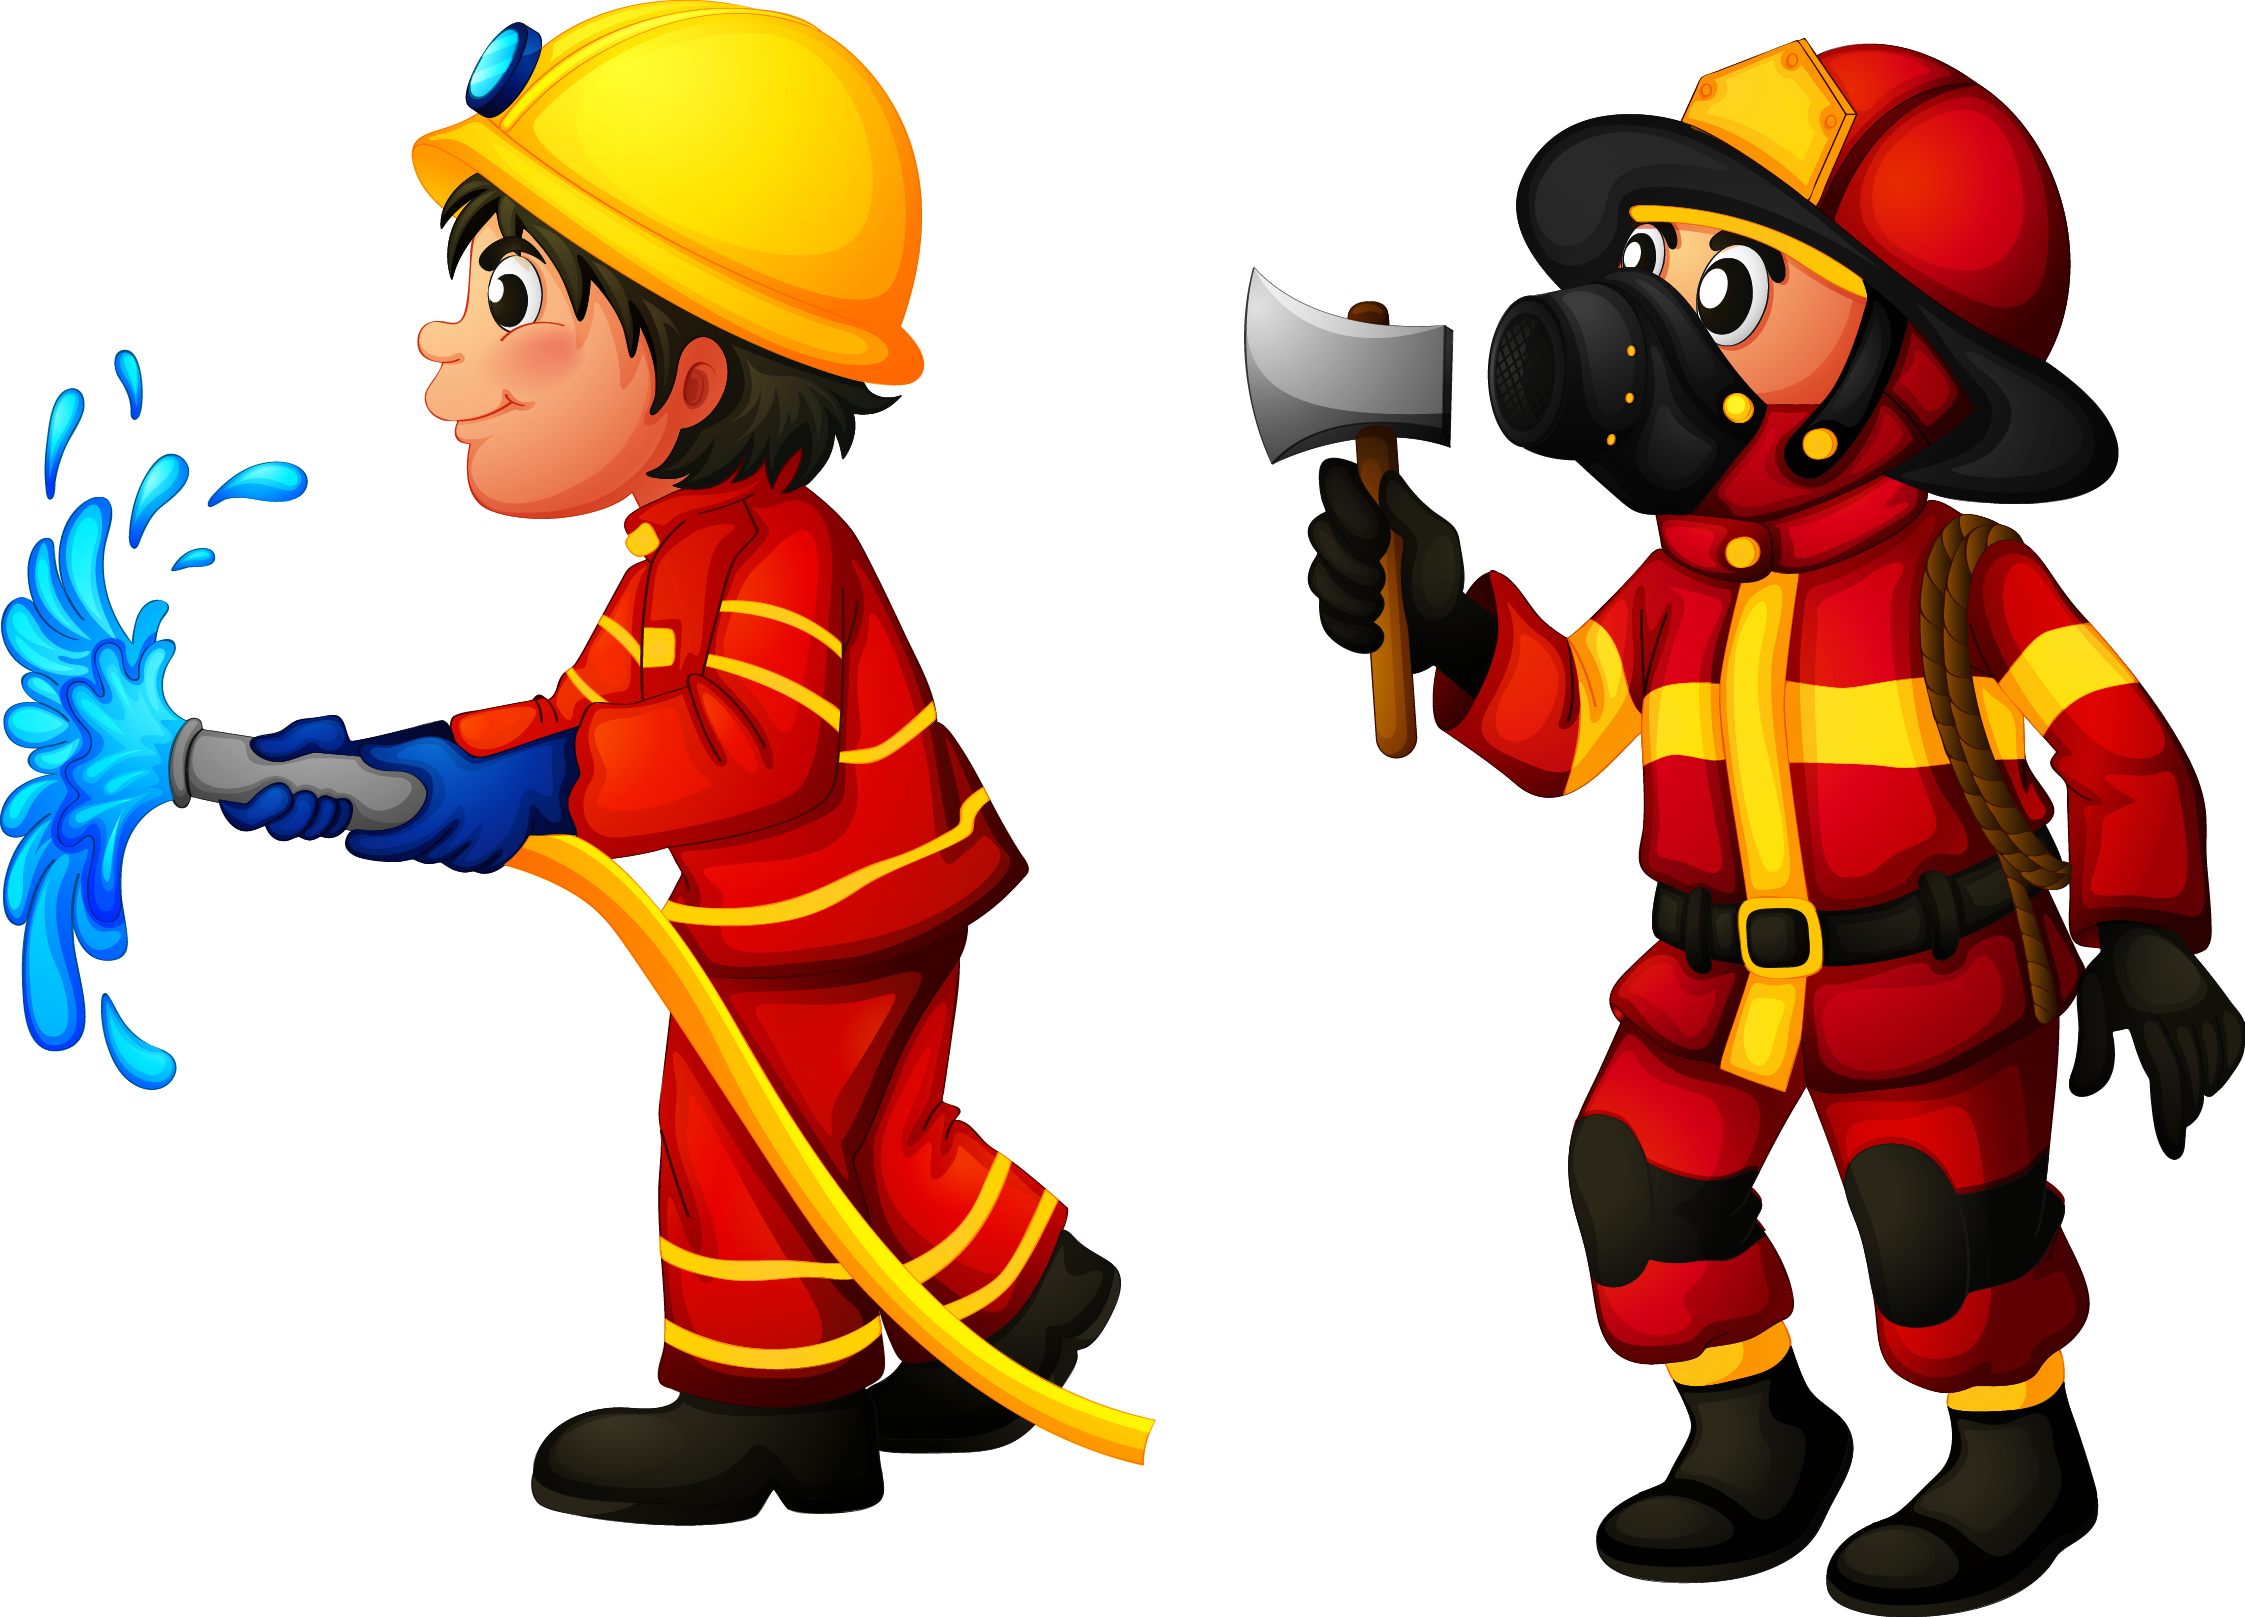 Firefighter royalty free stock. Fireman clipart work clipart